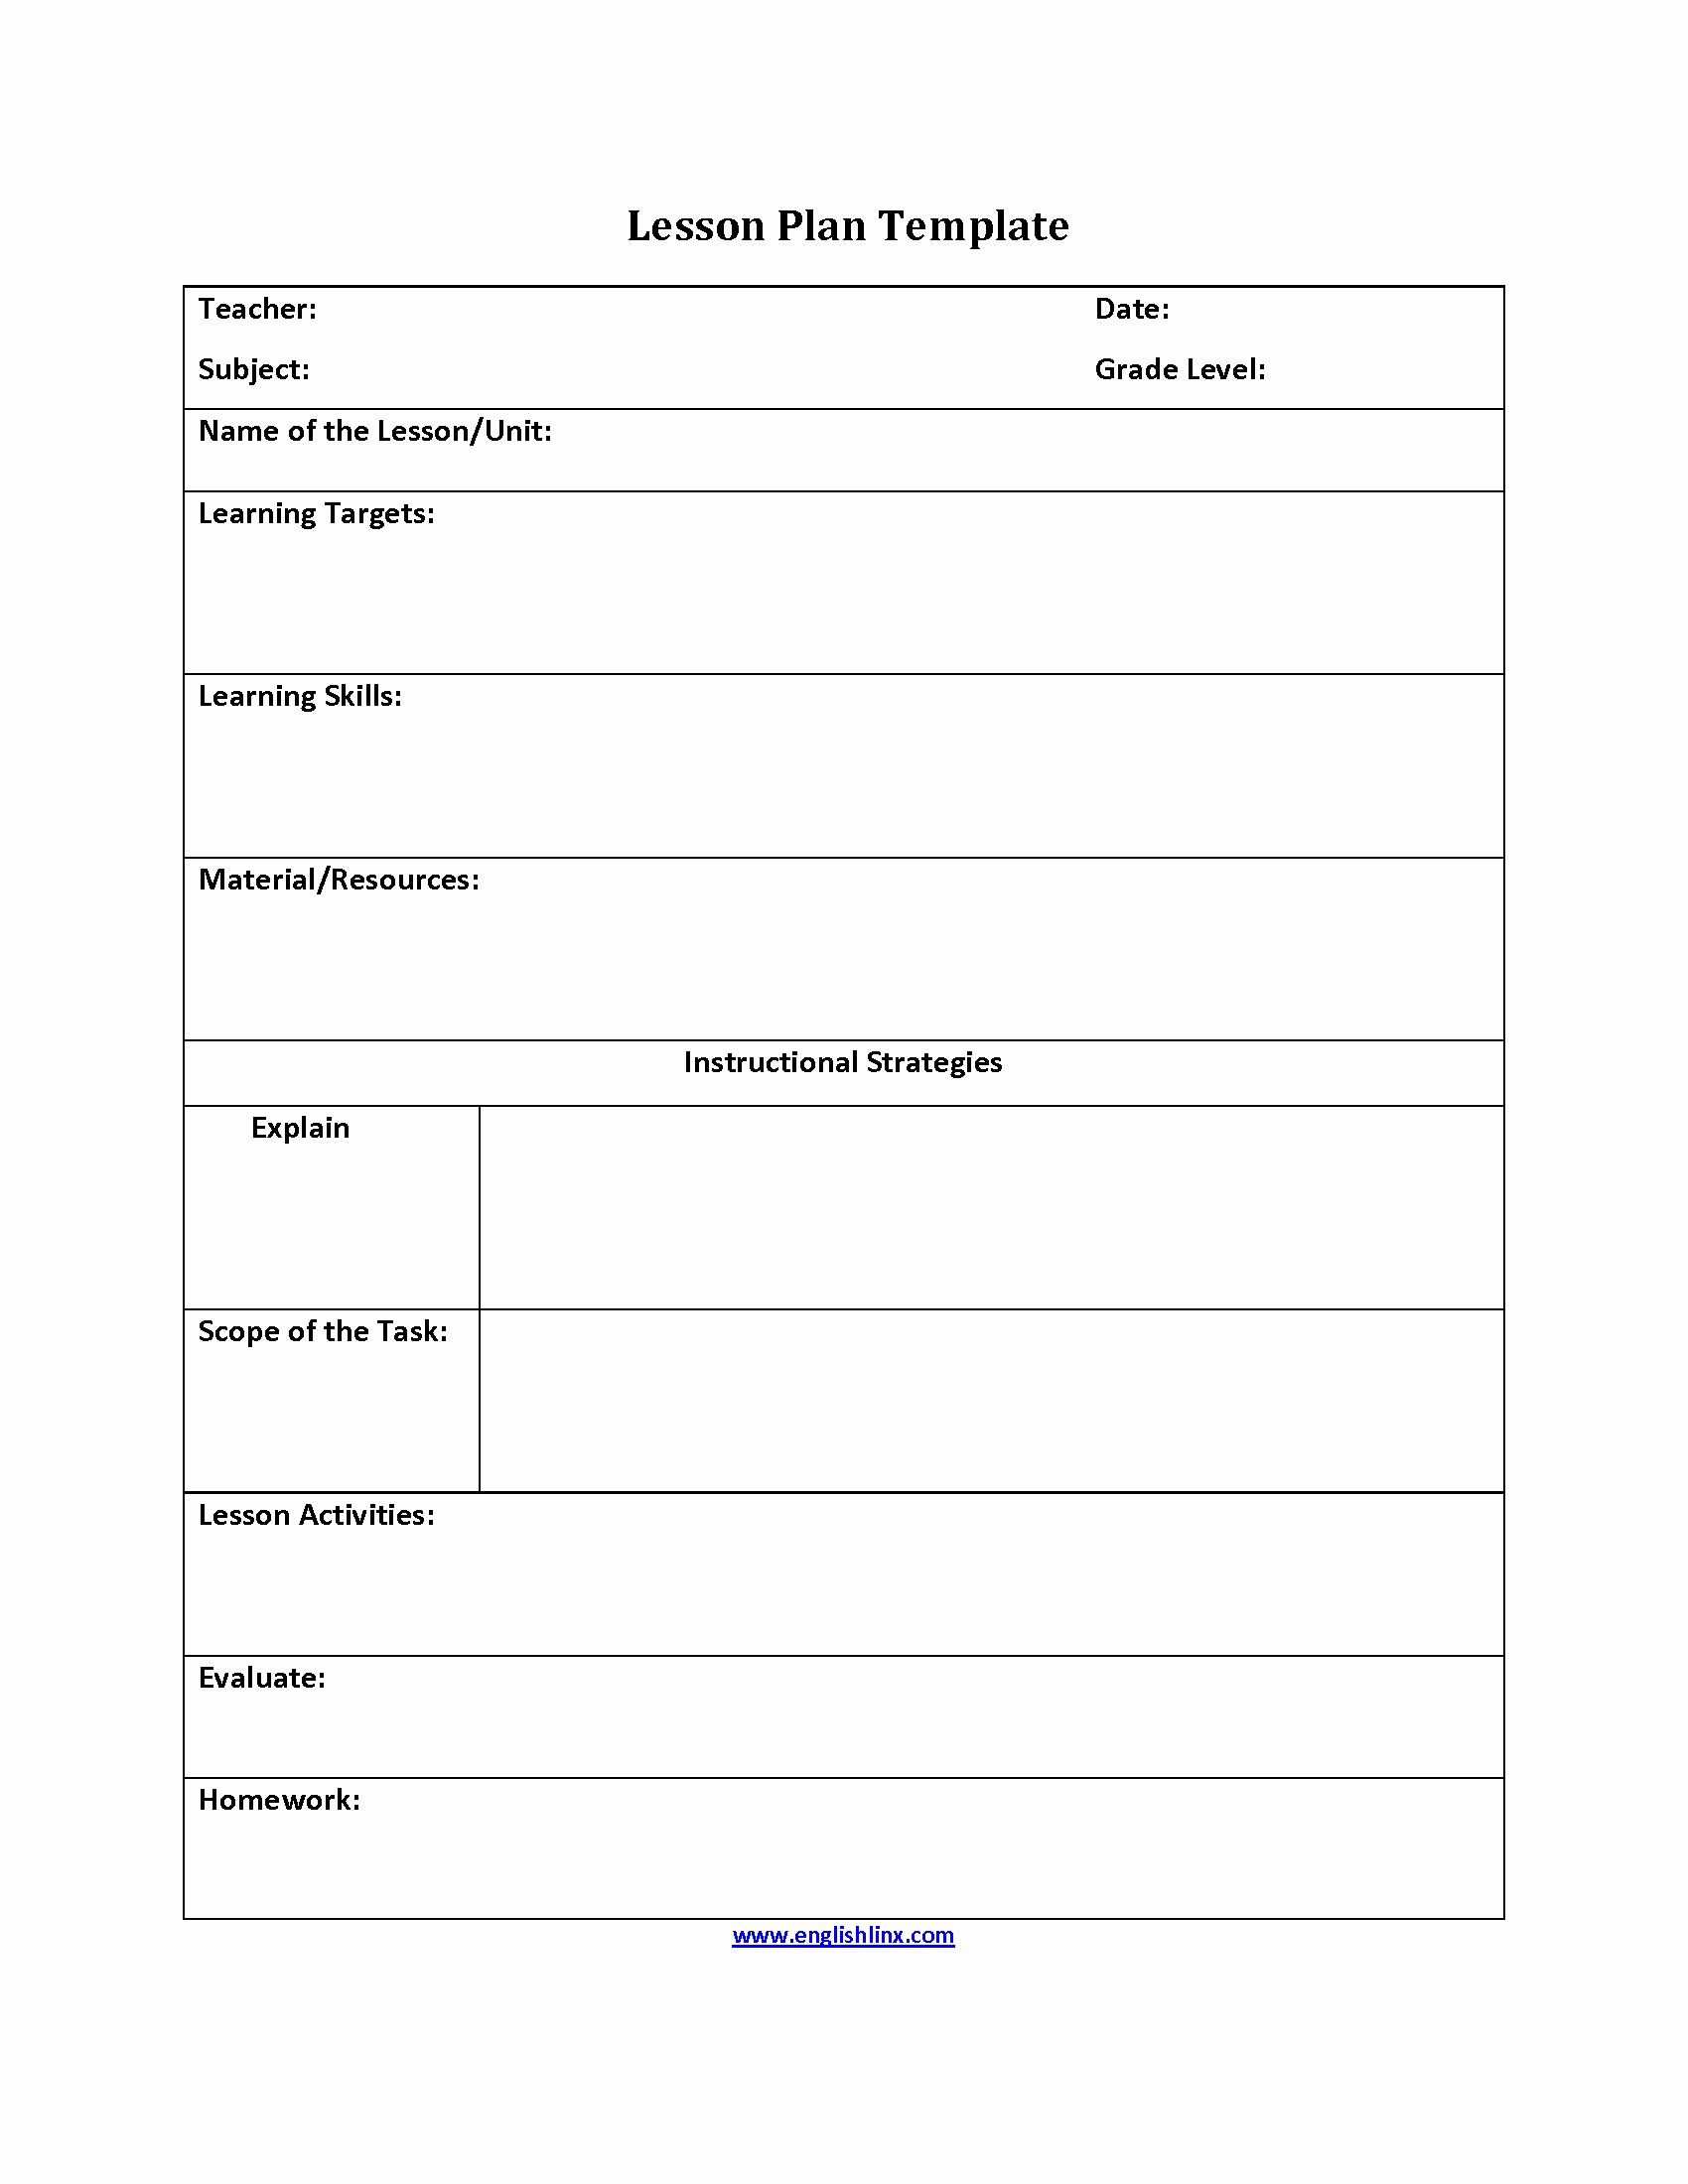 Lesson Plan Template for Teachers Beautiful Lesson Plan Template